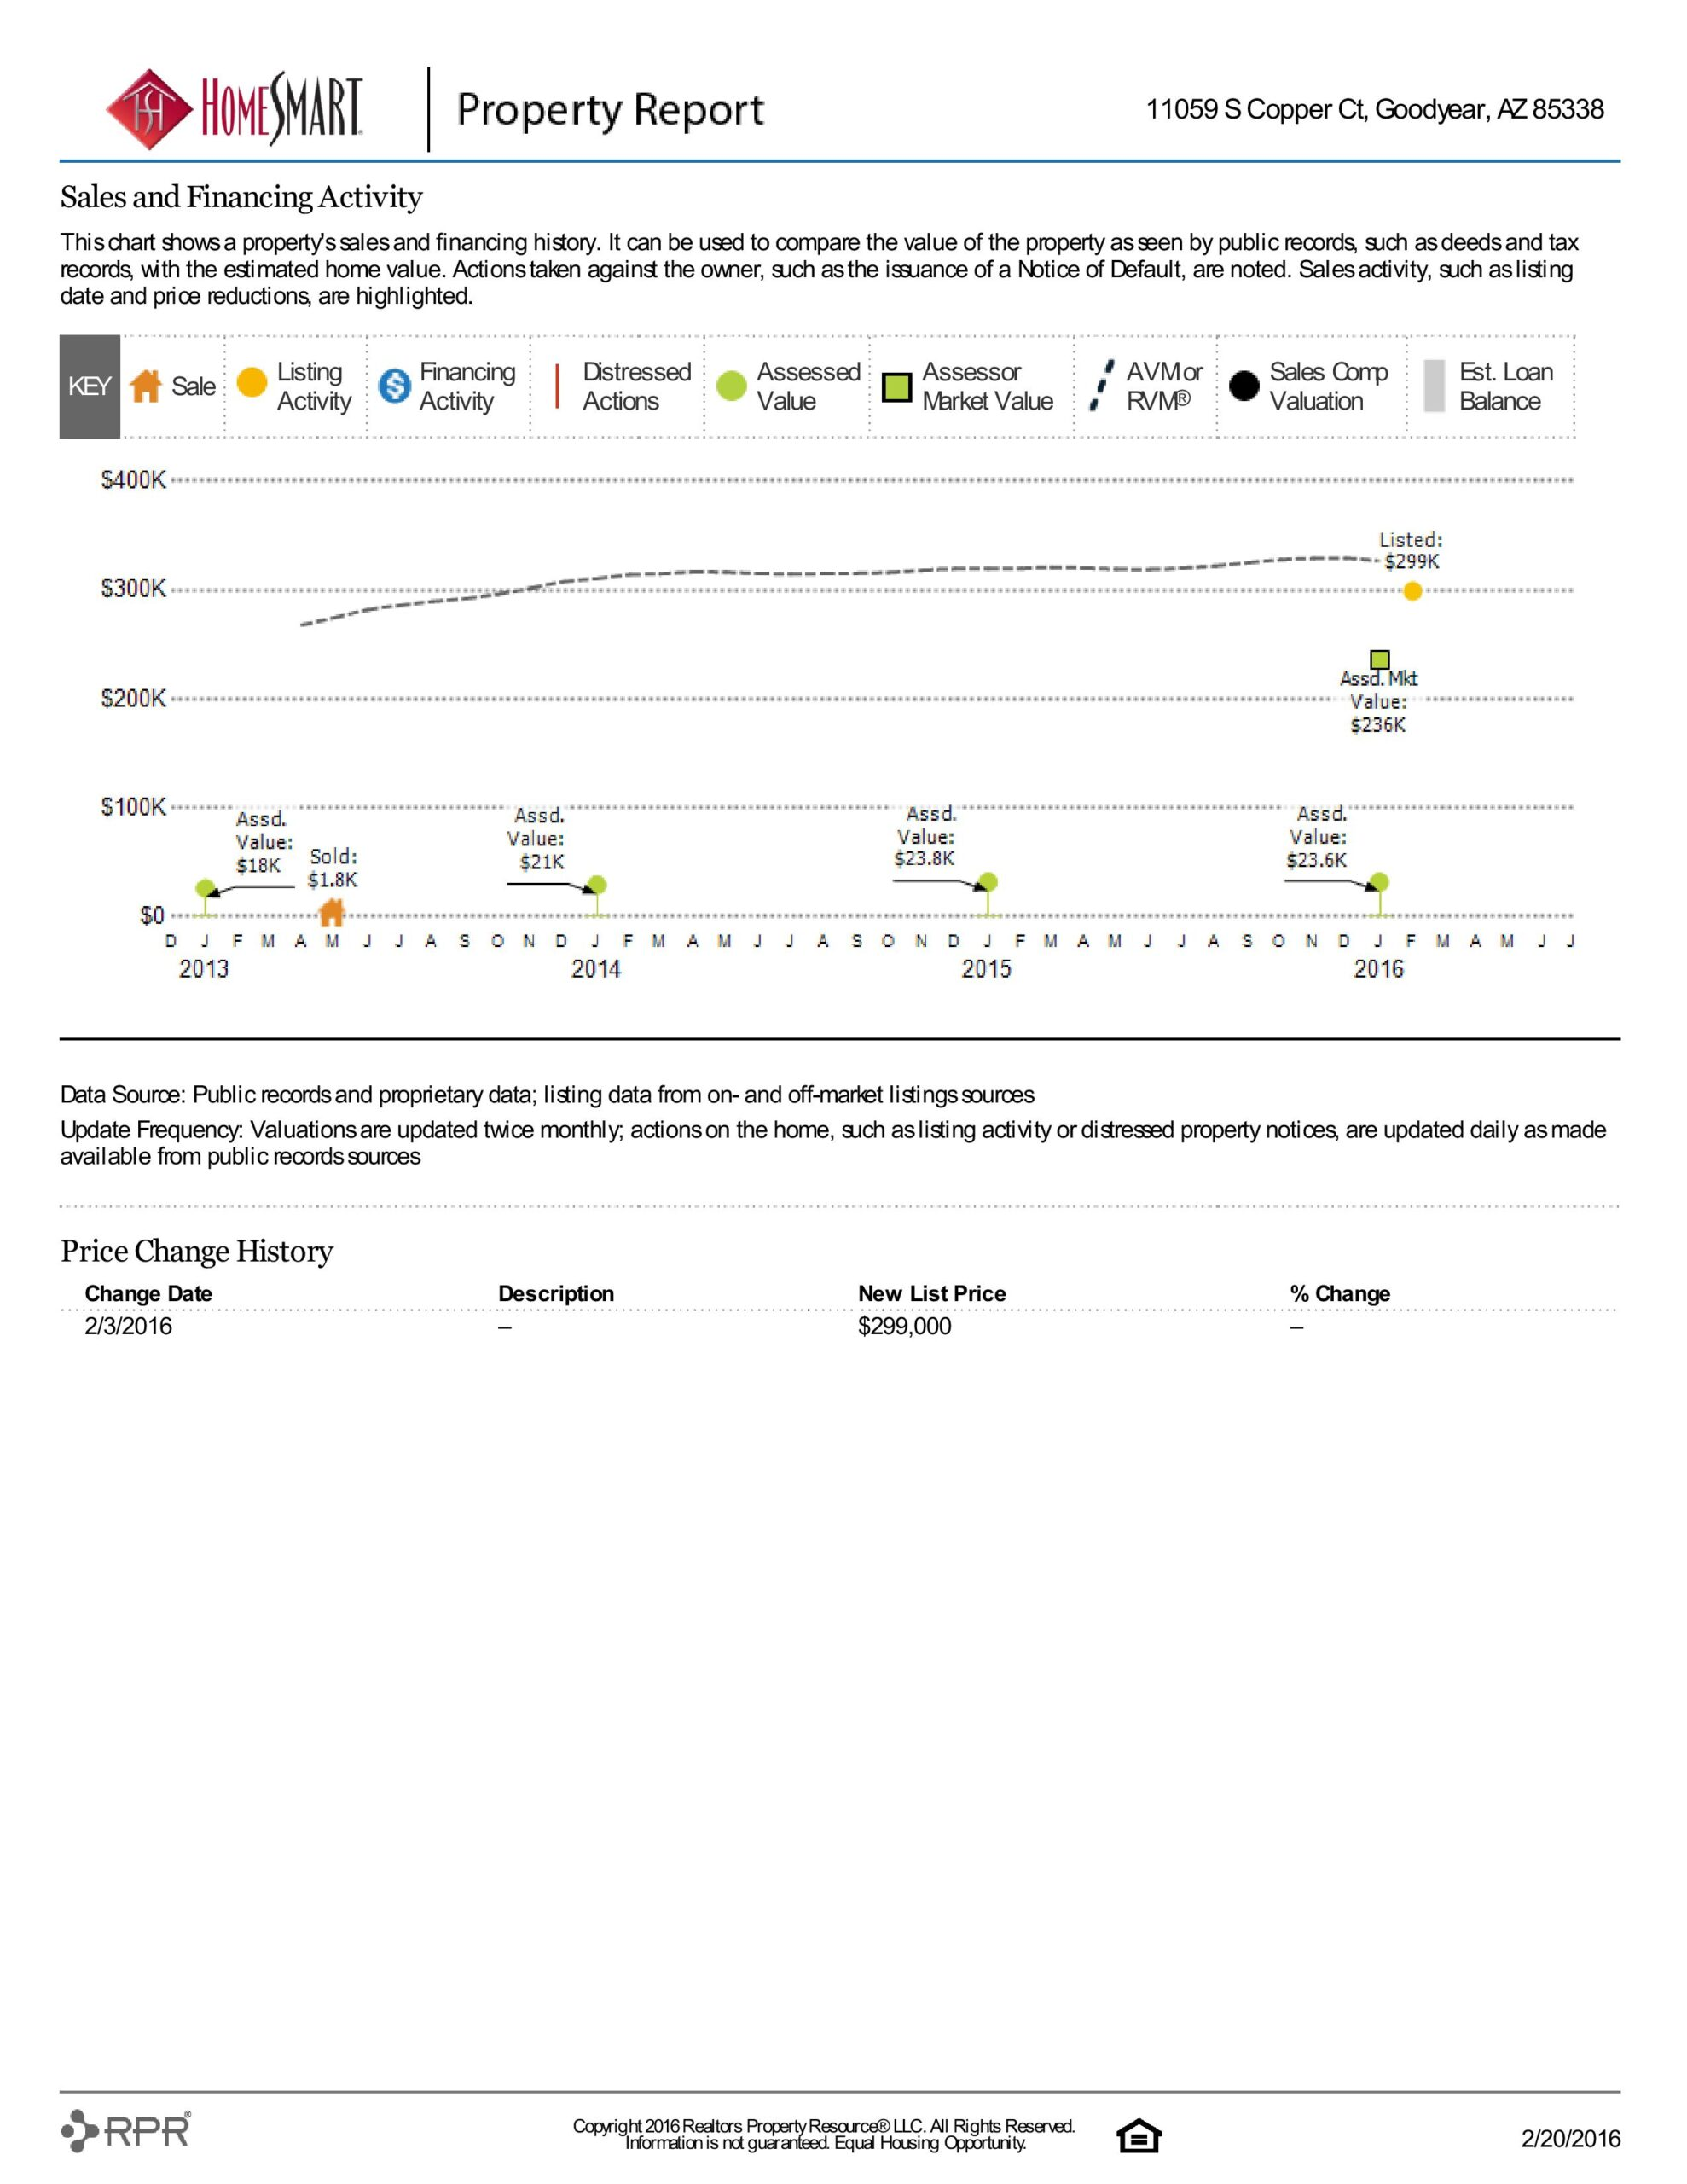 11059 S COPPER CT PROPERTY REPORT-page-013